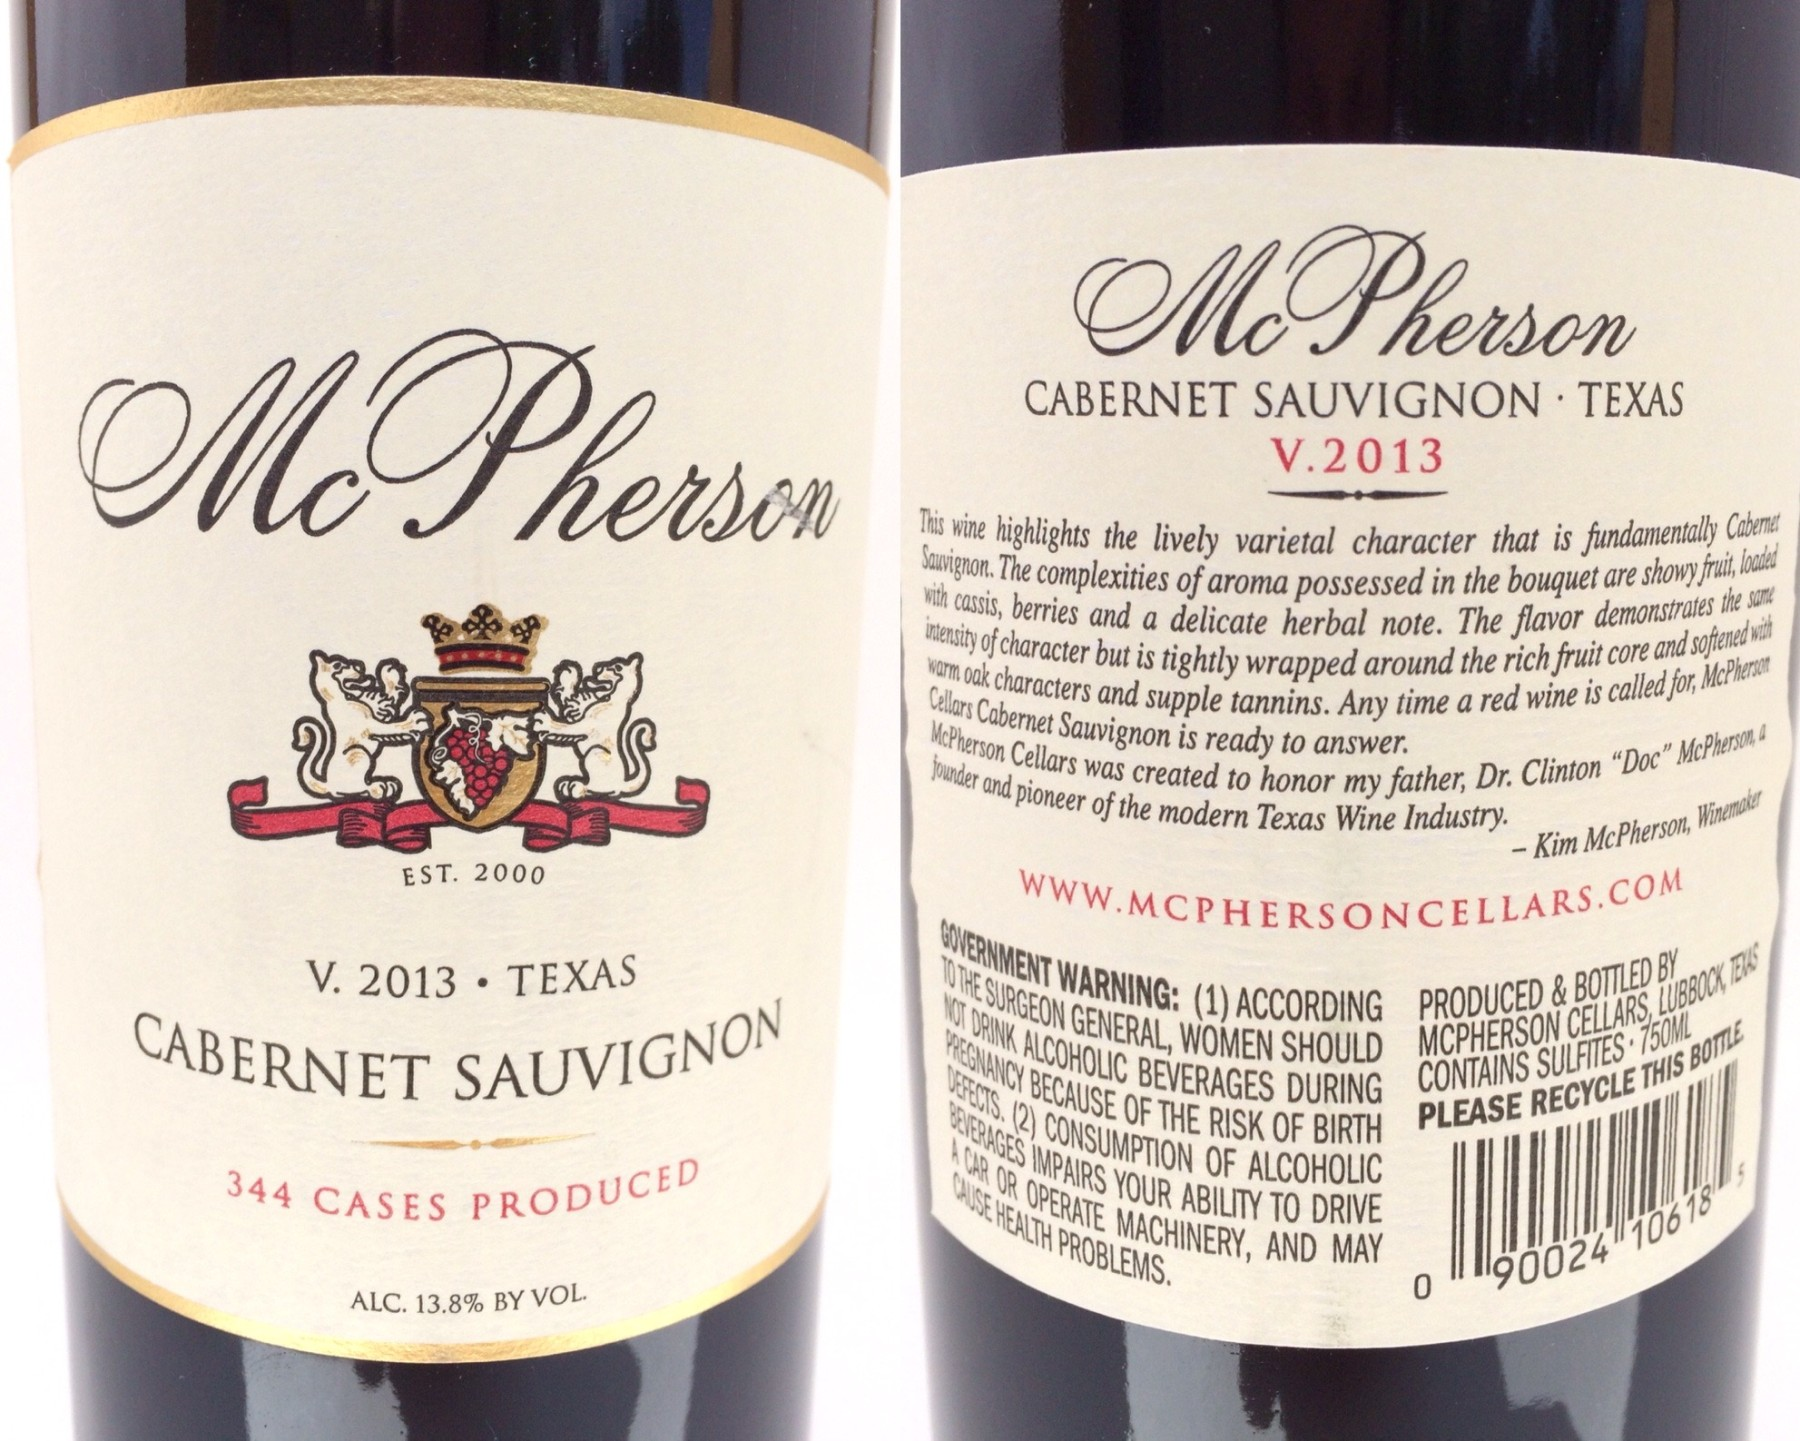 McPherson Cellars Cabernet Sauvignon labels